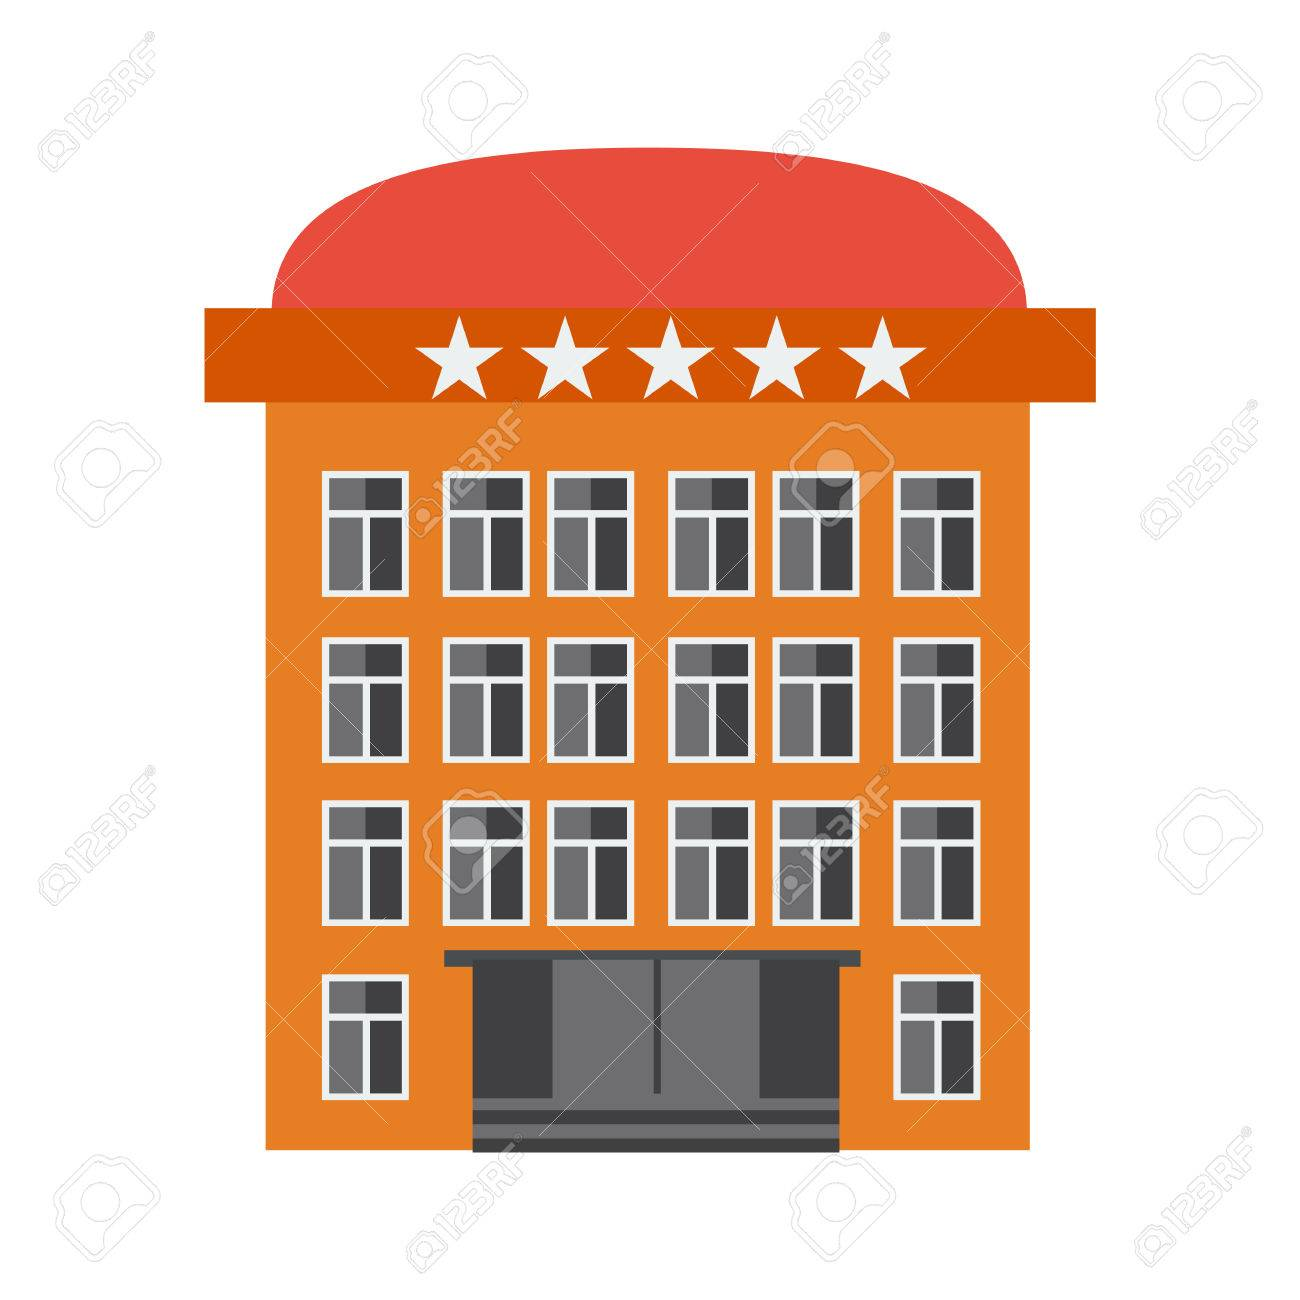 Orange Hotel Building Flat Colored Vector Illustration Icon With 5 Stars Stock